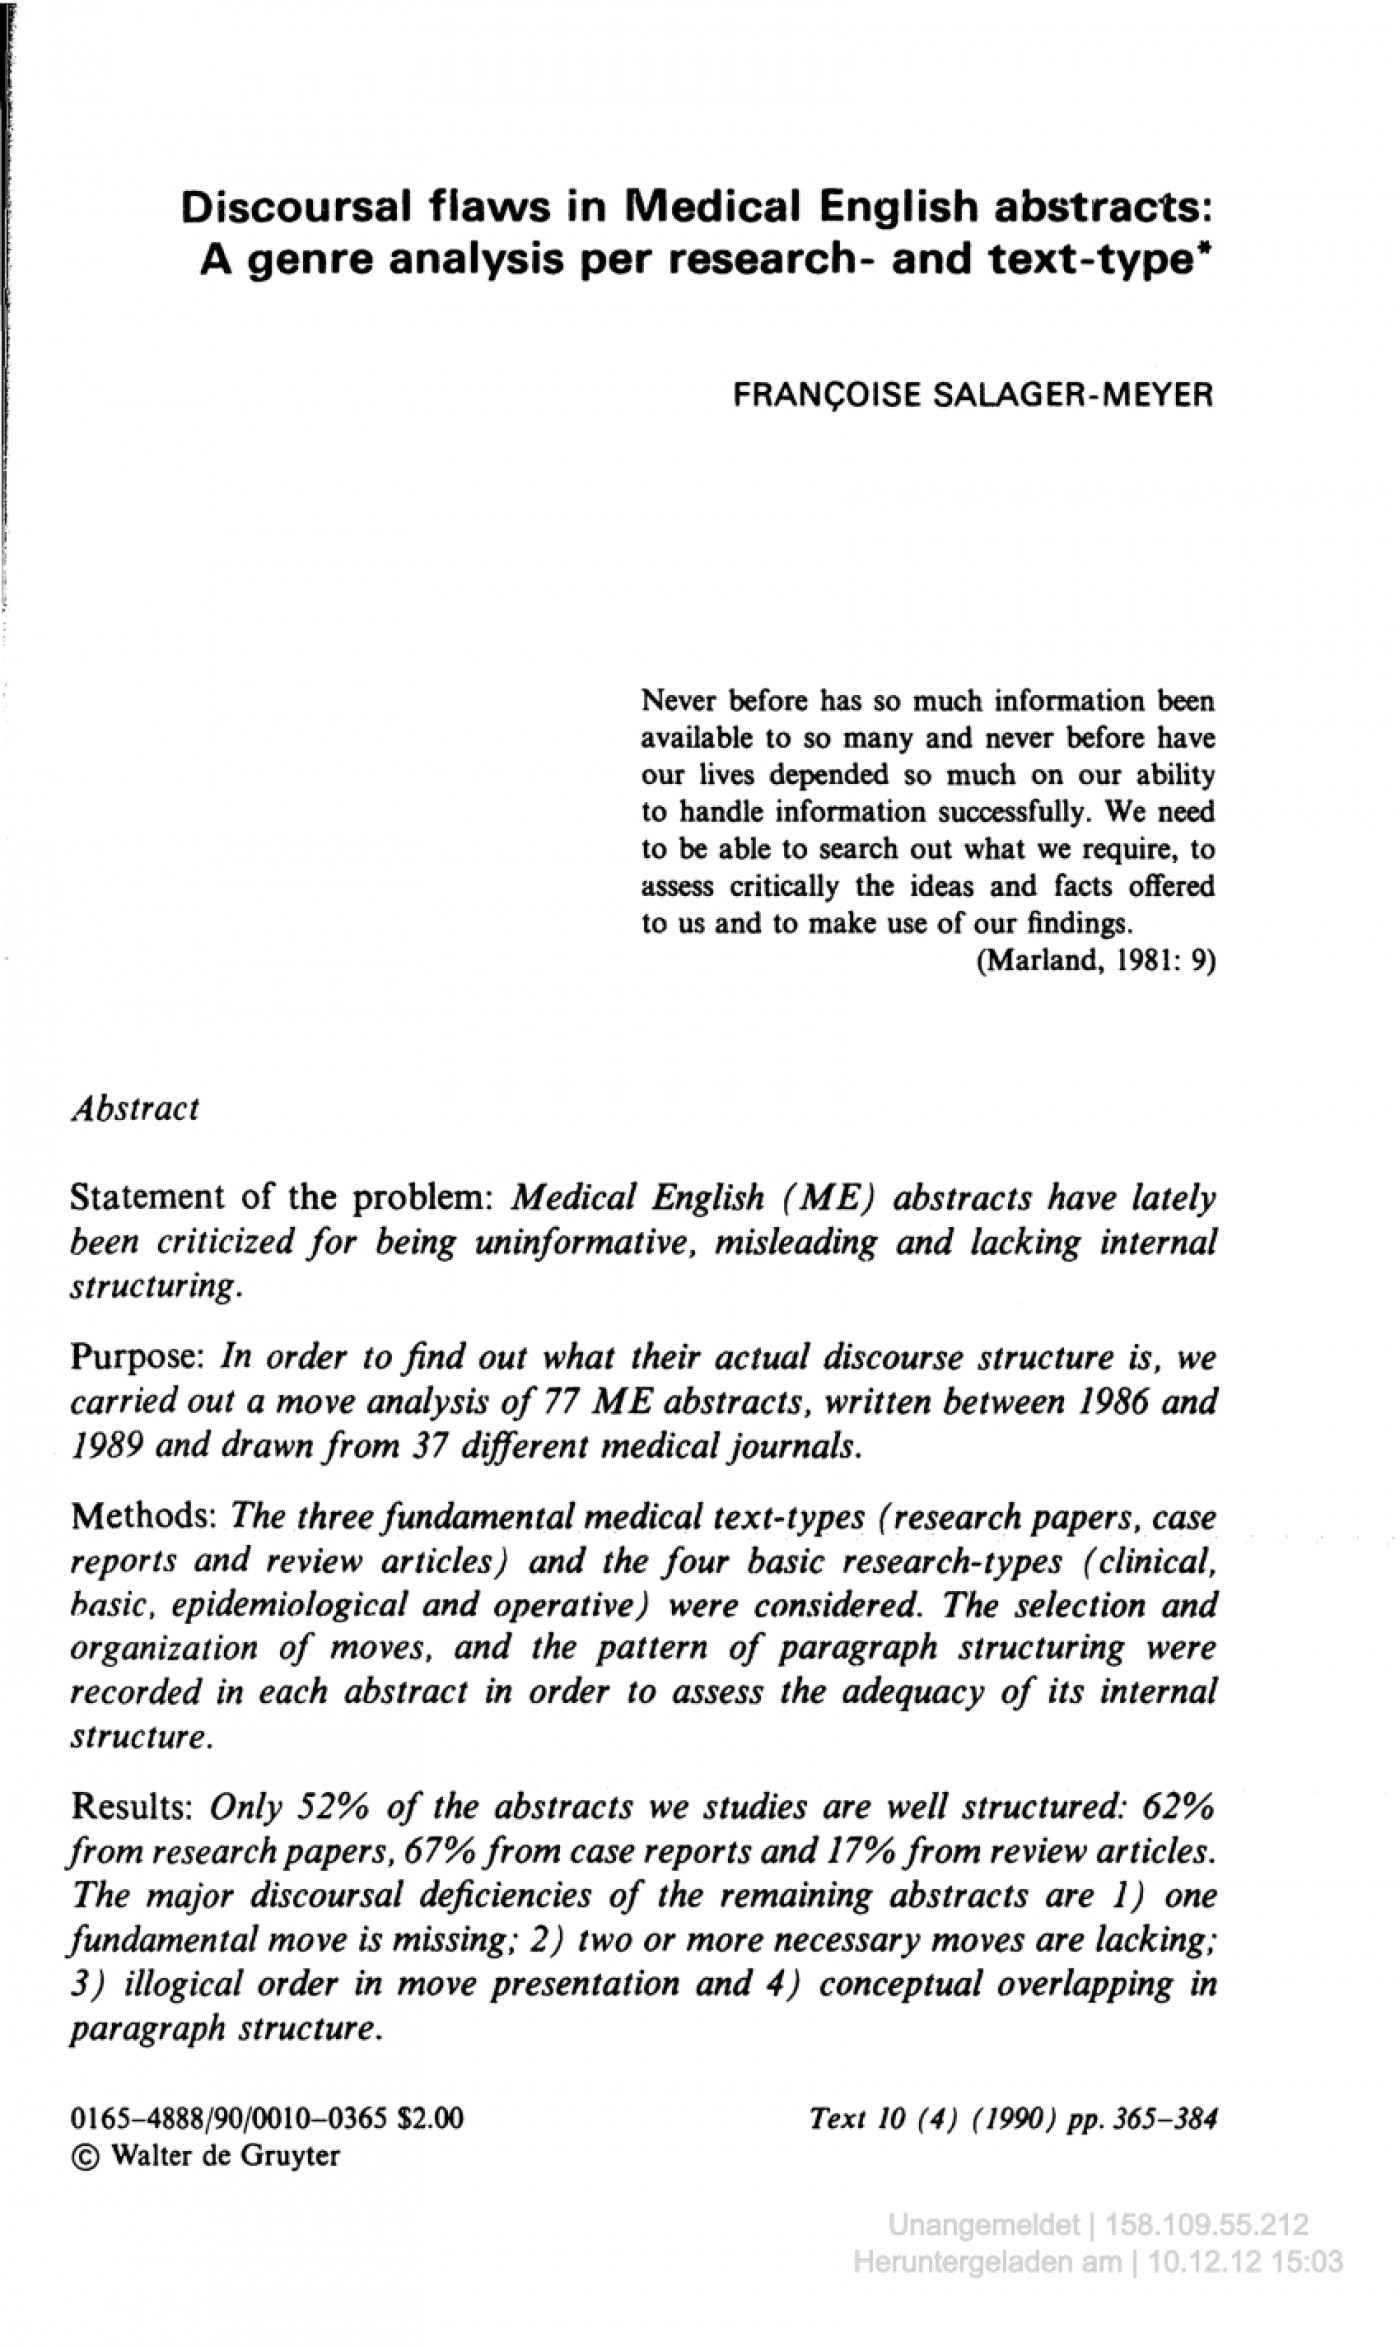 004 Abstract Research Paper Rare Example Introduction For Apa Style Pdf 1400